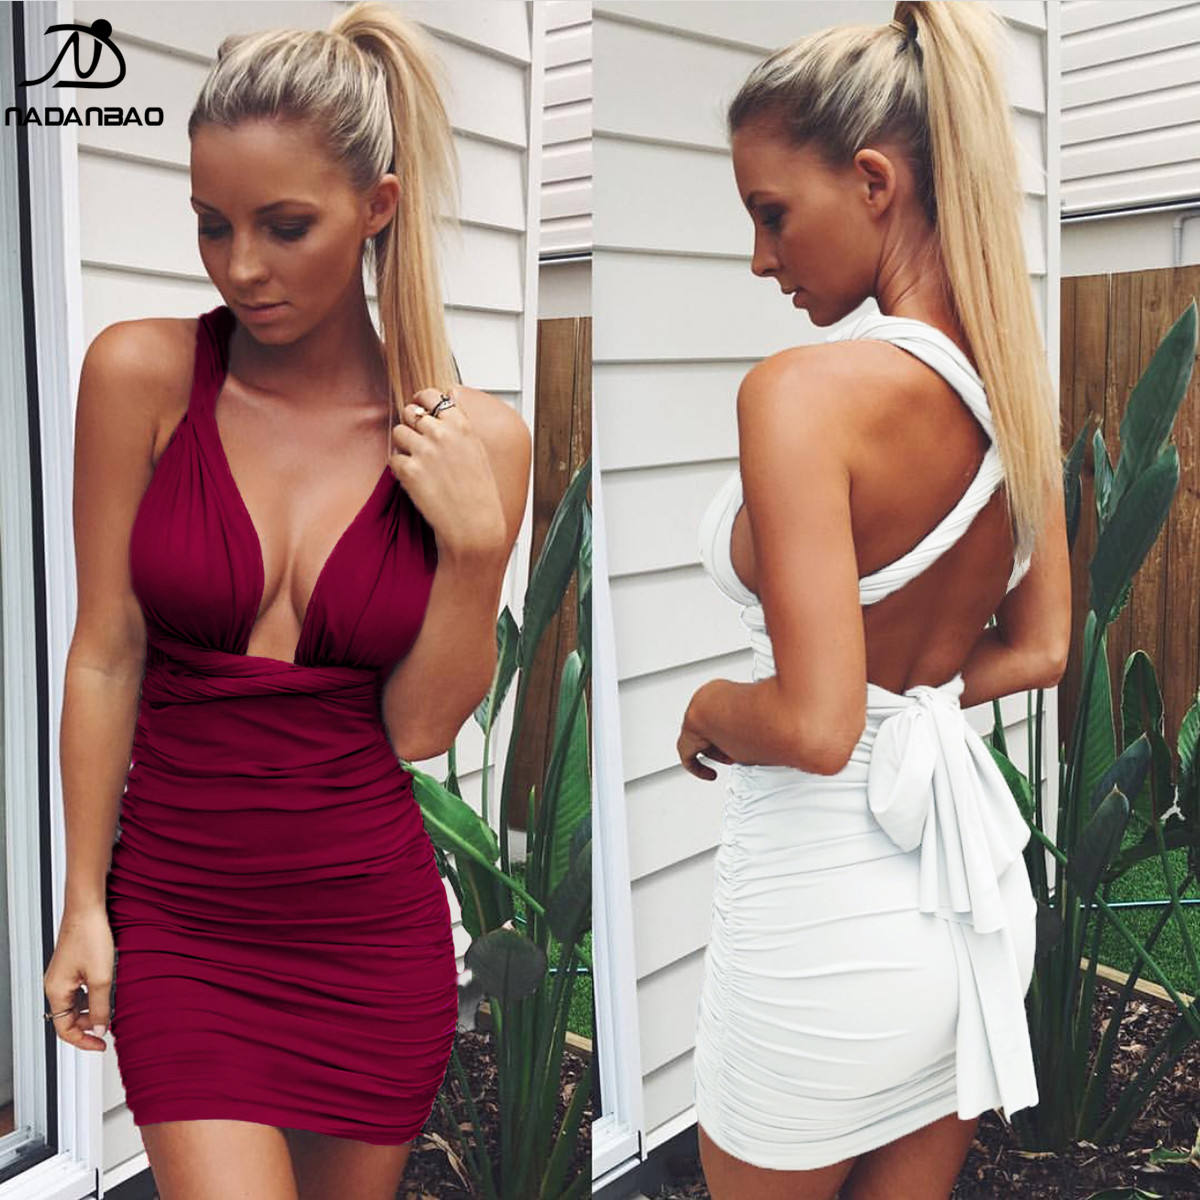 Nadanbao Merk 2020 Best Selling Lady Sexy Wijn Rode Jurk Vrouwen Jurk Fashion V-hals Bandage Night Club Jurk